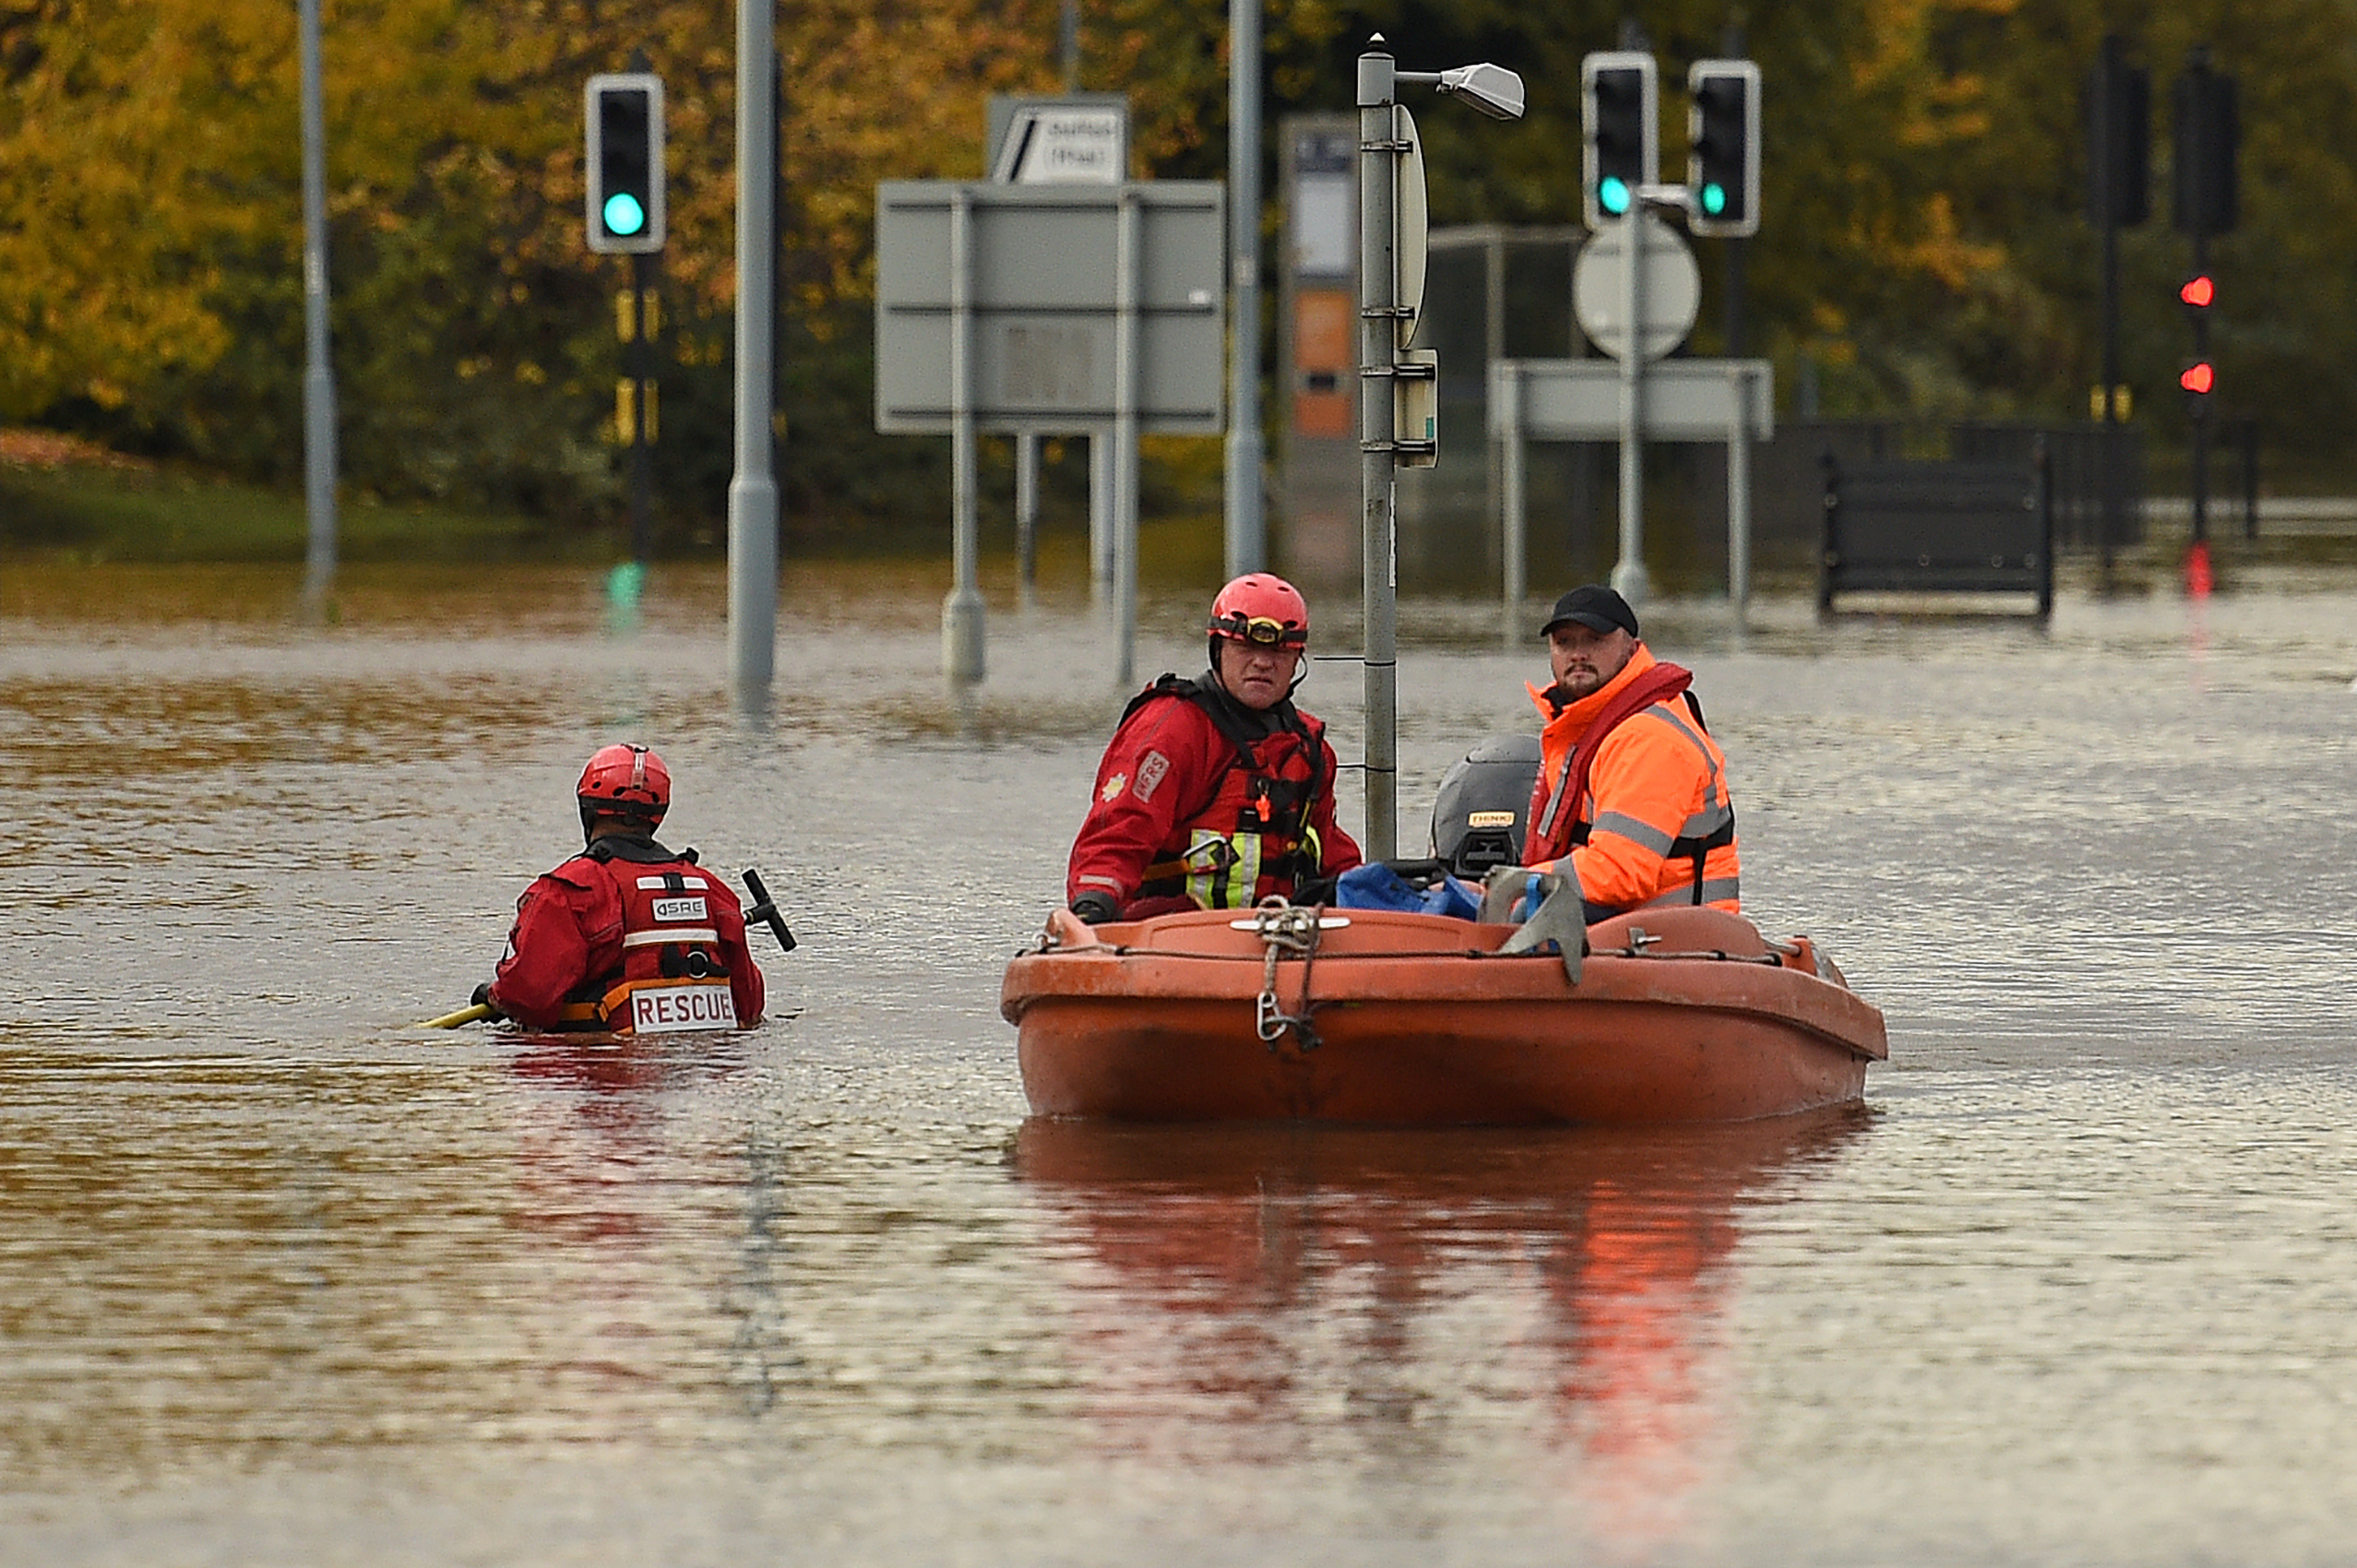 Members of the Fire and Rescue service make their way through flood water in a boat in South Yorkshire.